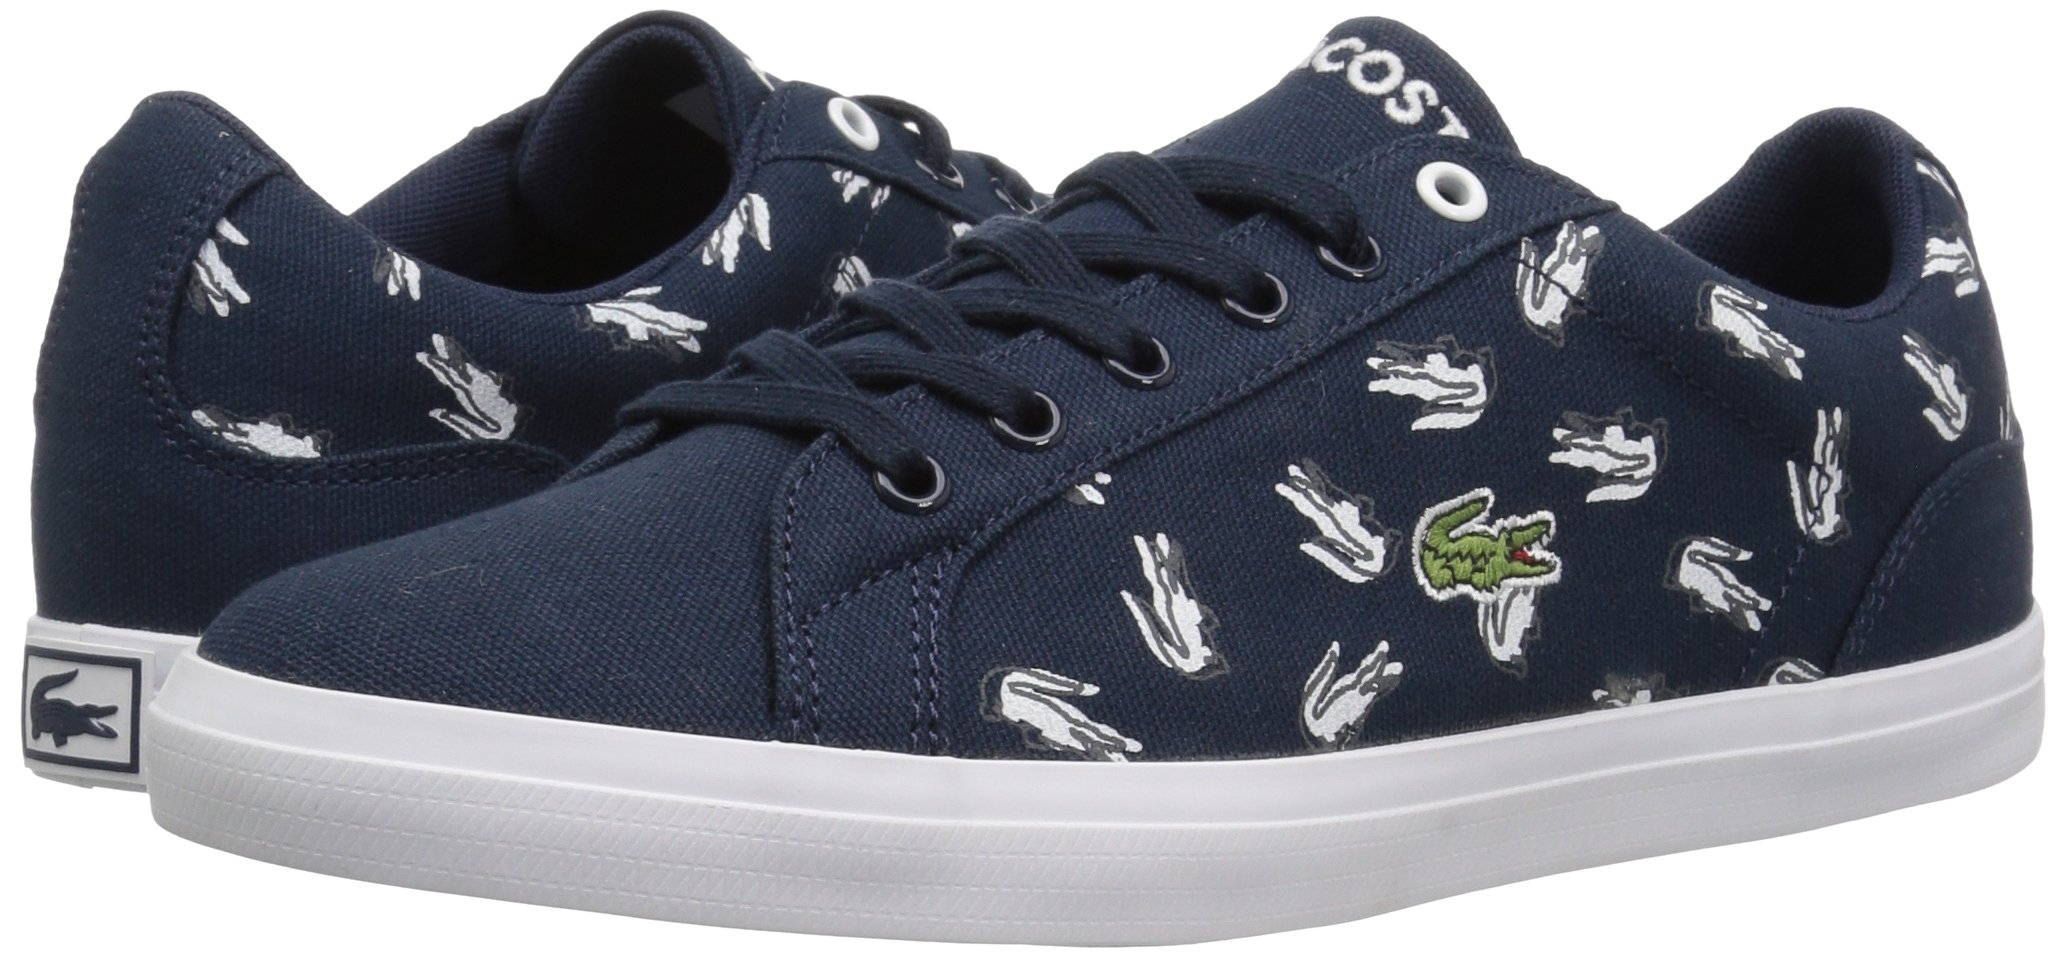 Lacoste Kids' Lerond Sneakers,Navy/White cotton canvas,5 M US Big Kid by Lacoste (Image #6)